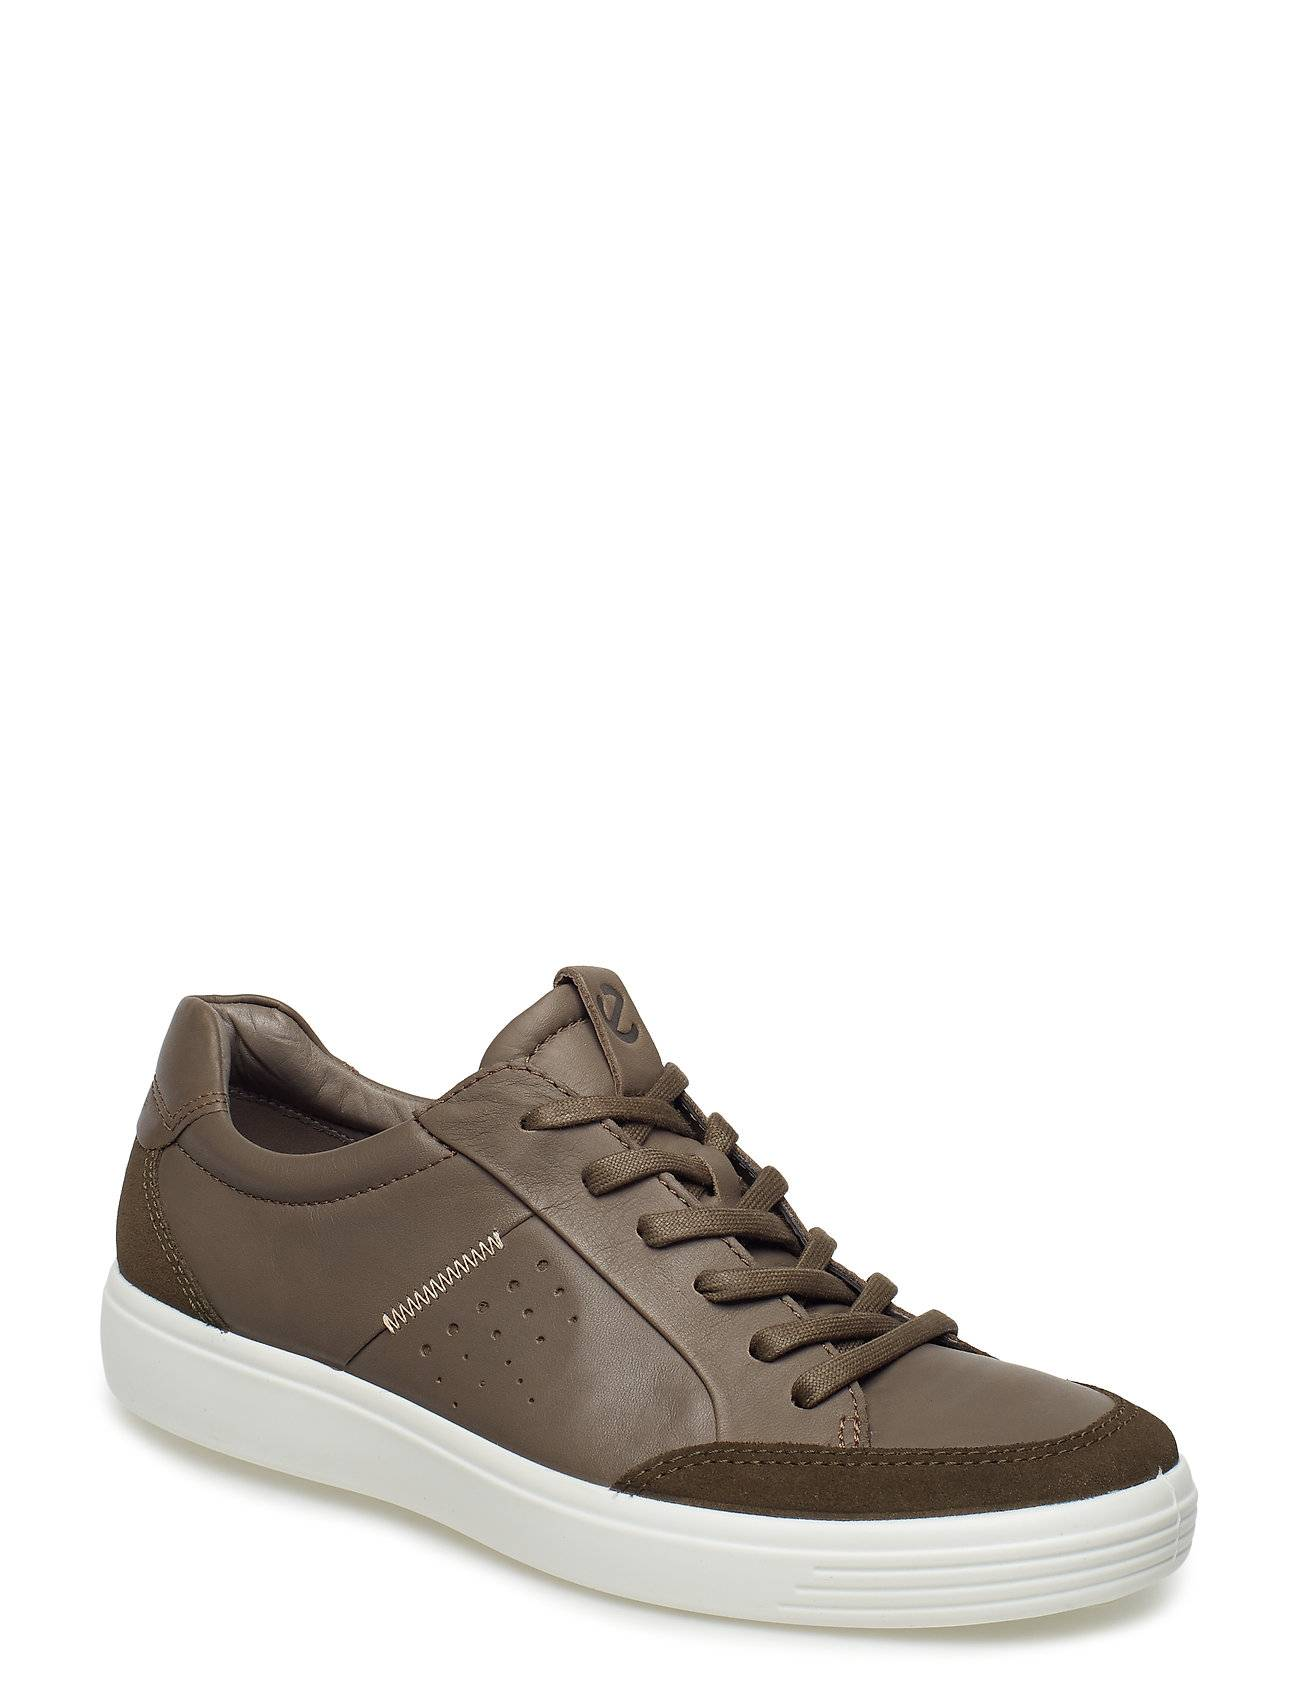 ECCO Soft 7 M Matalavartiset Sneakerit Tennarit Beige ECCO